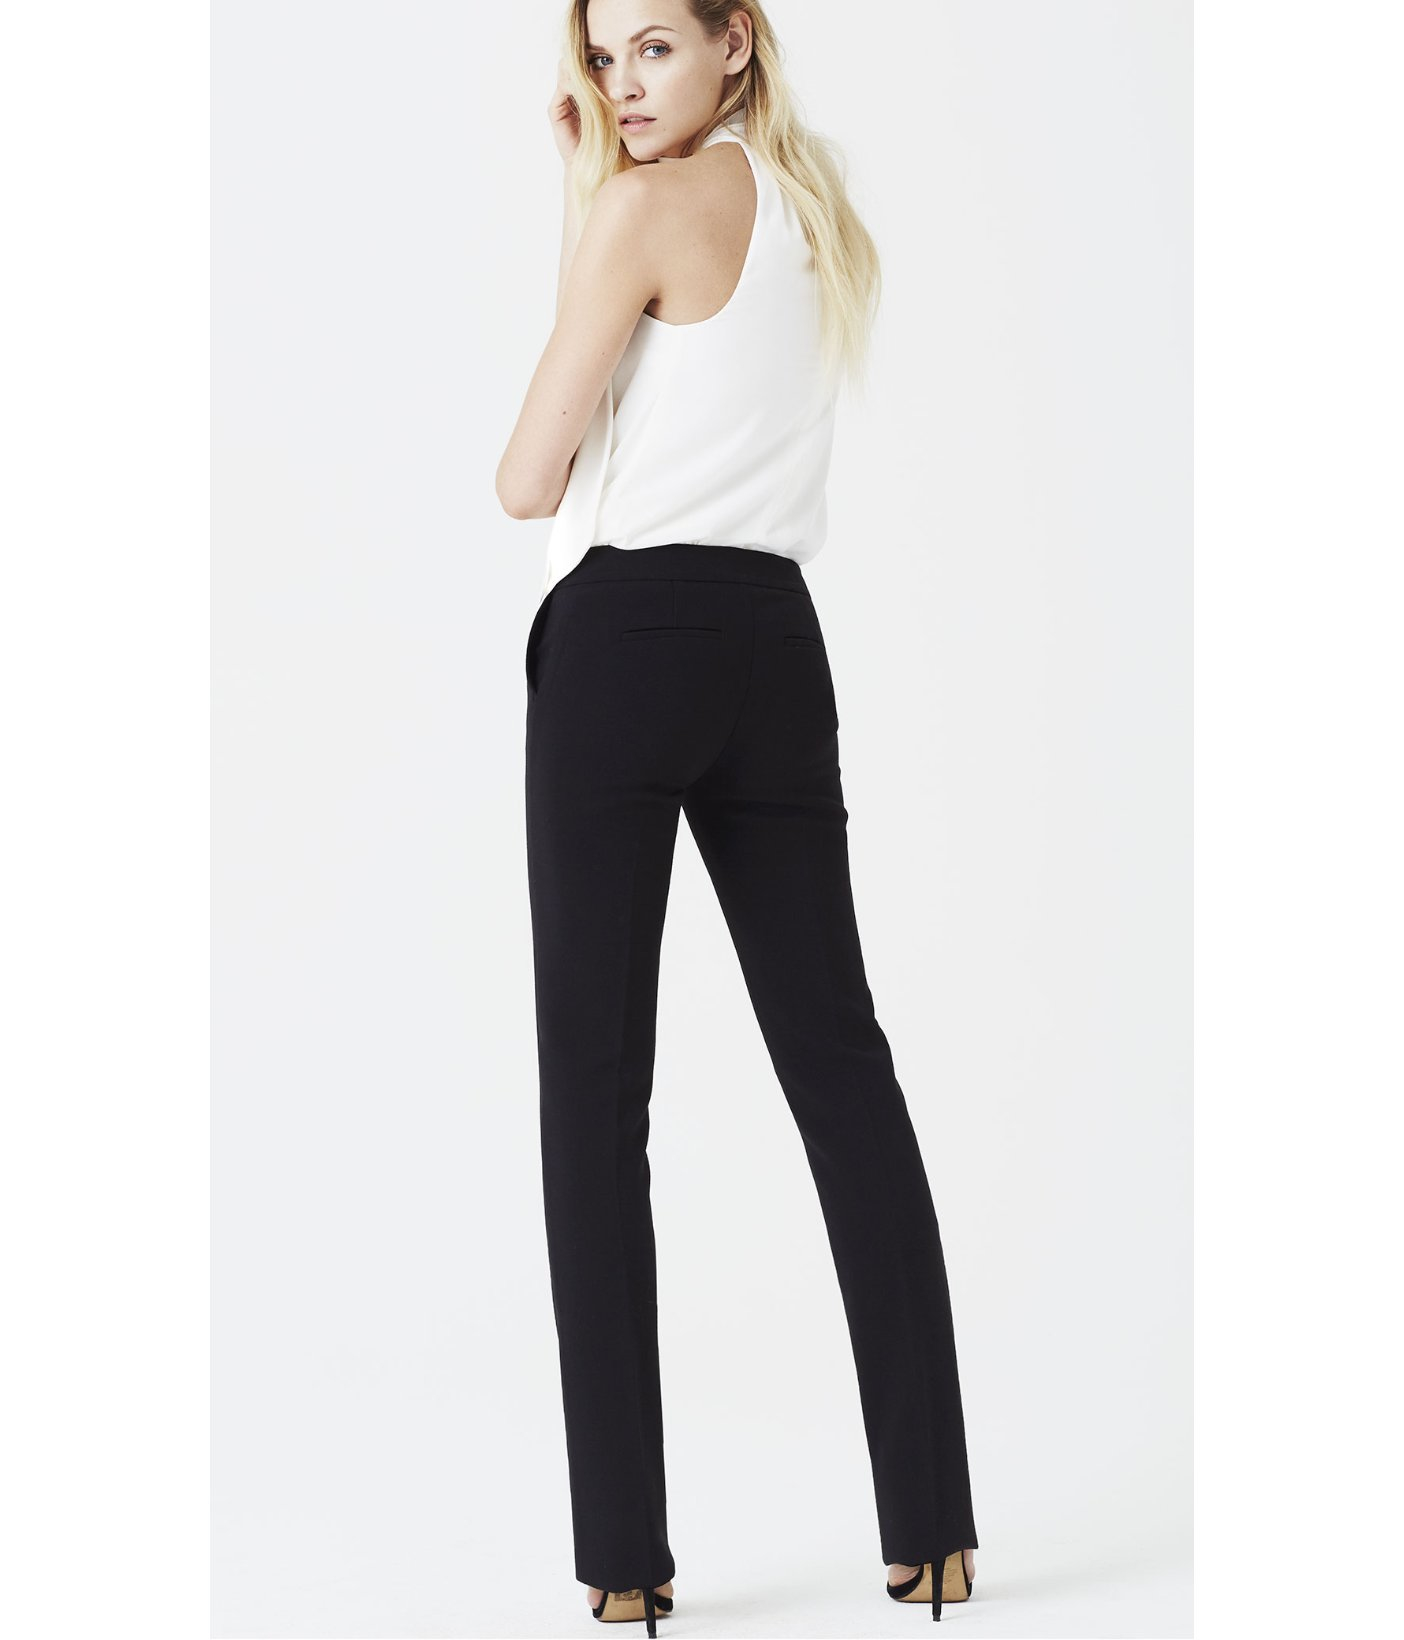 Express Hollywood Waistband Trouser Pant in Black (PITCH BLACK) | Lyst